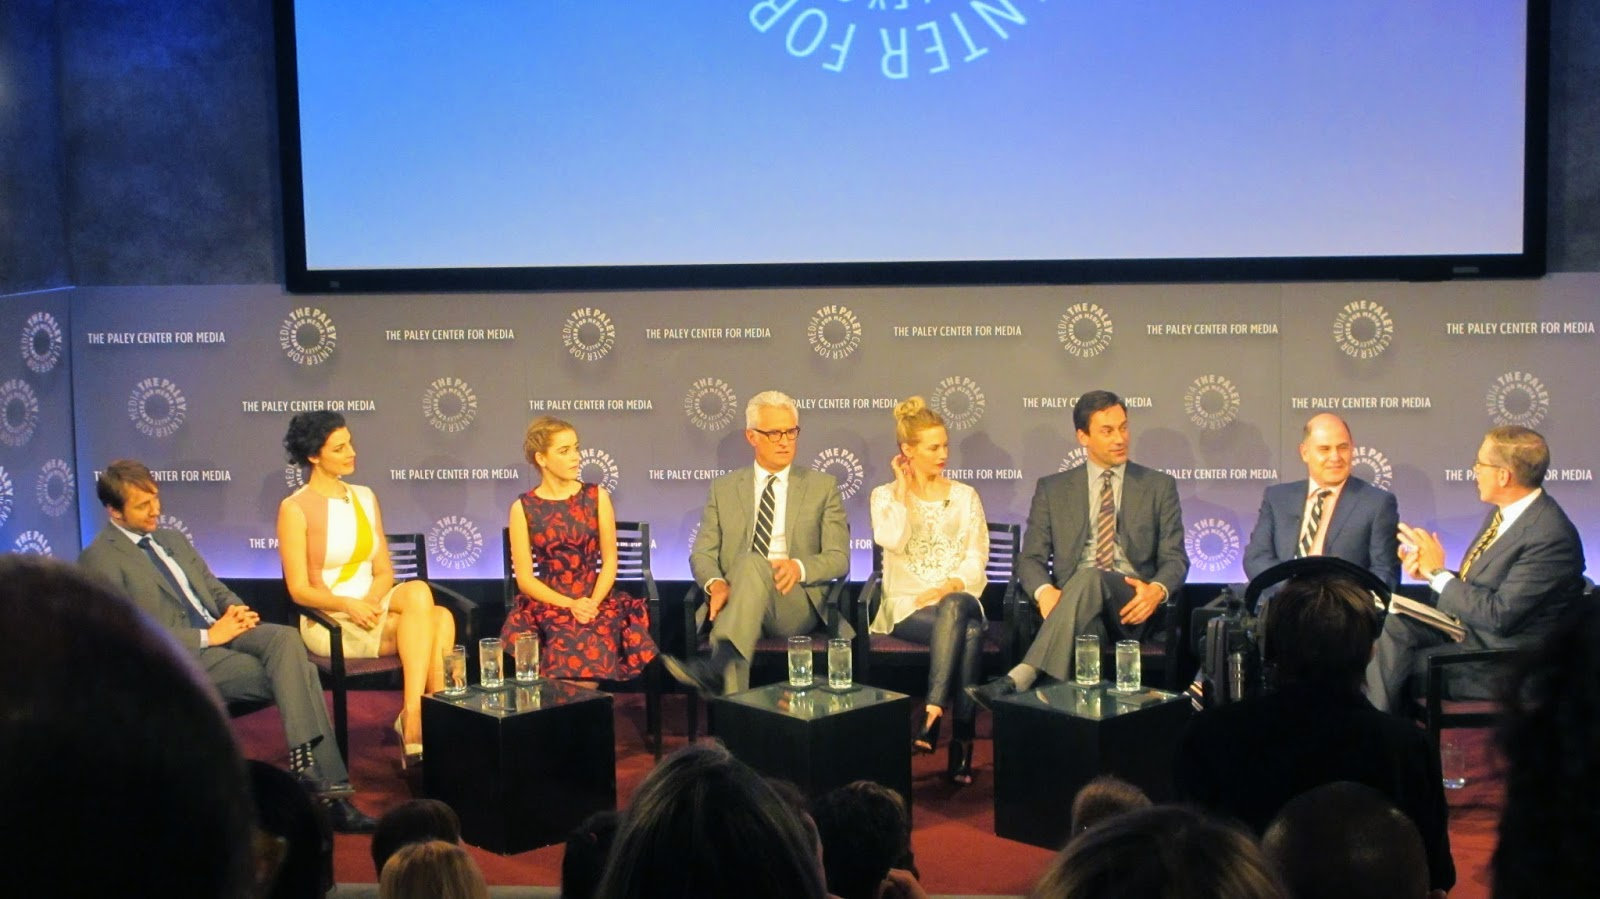 Paley Center Mad Men evening